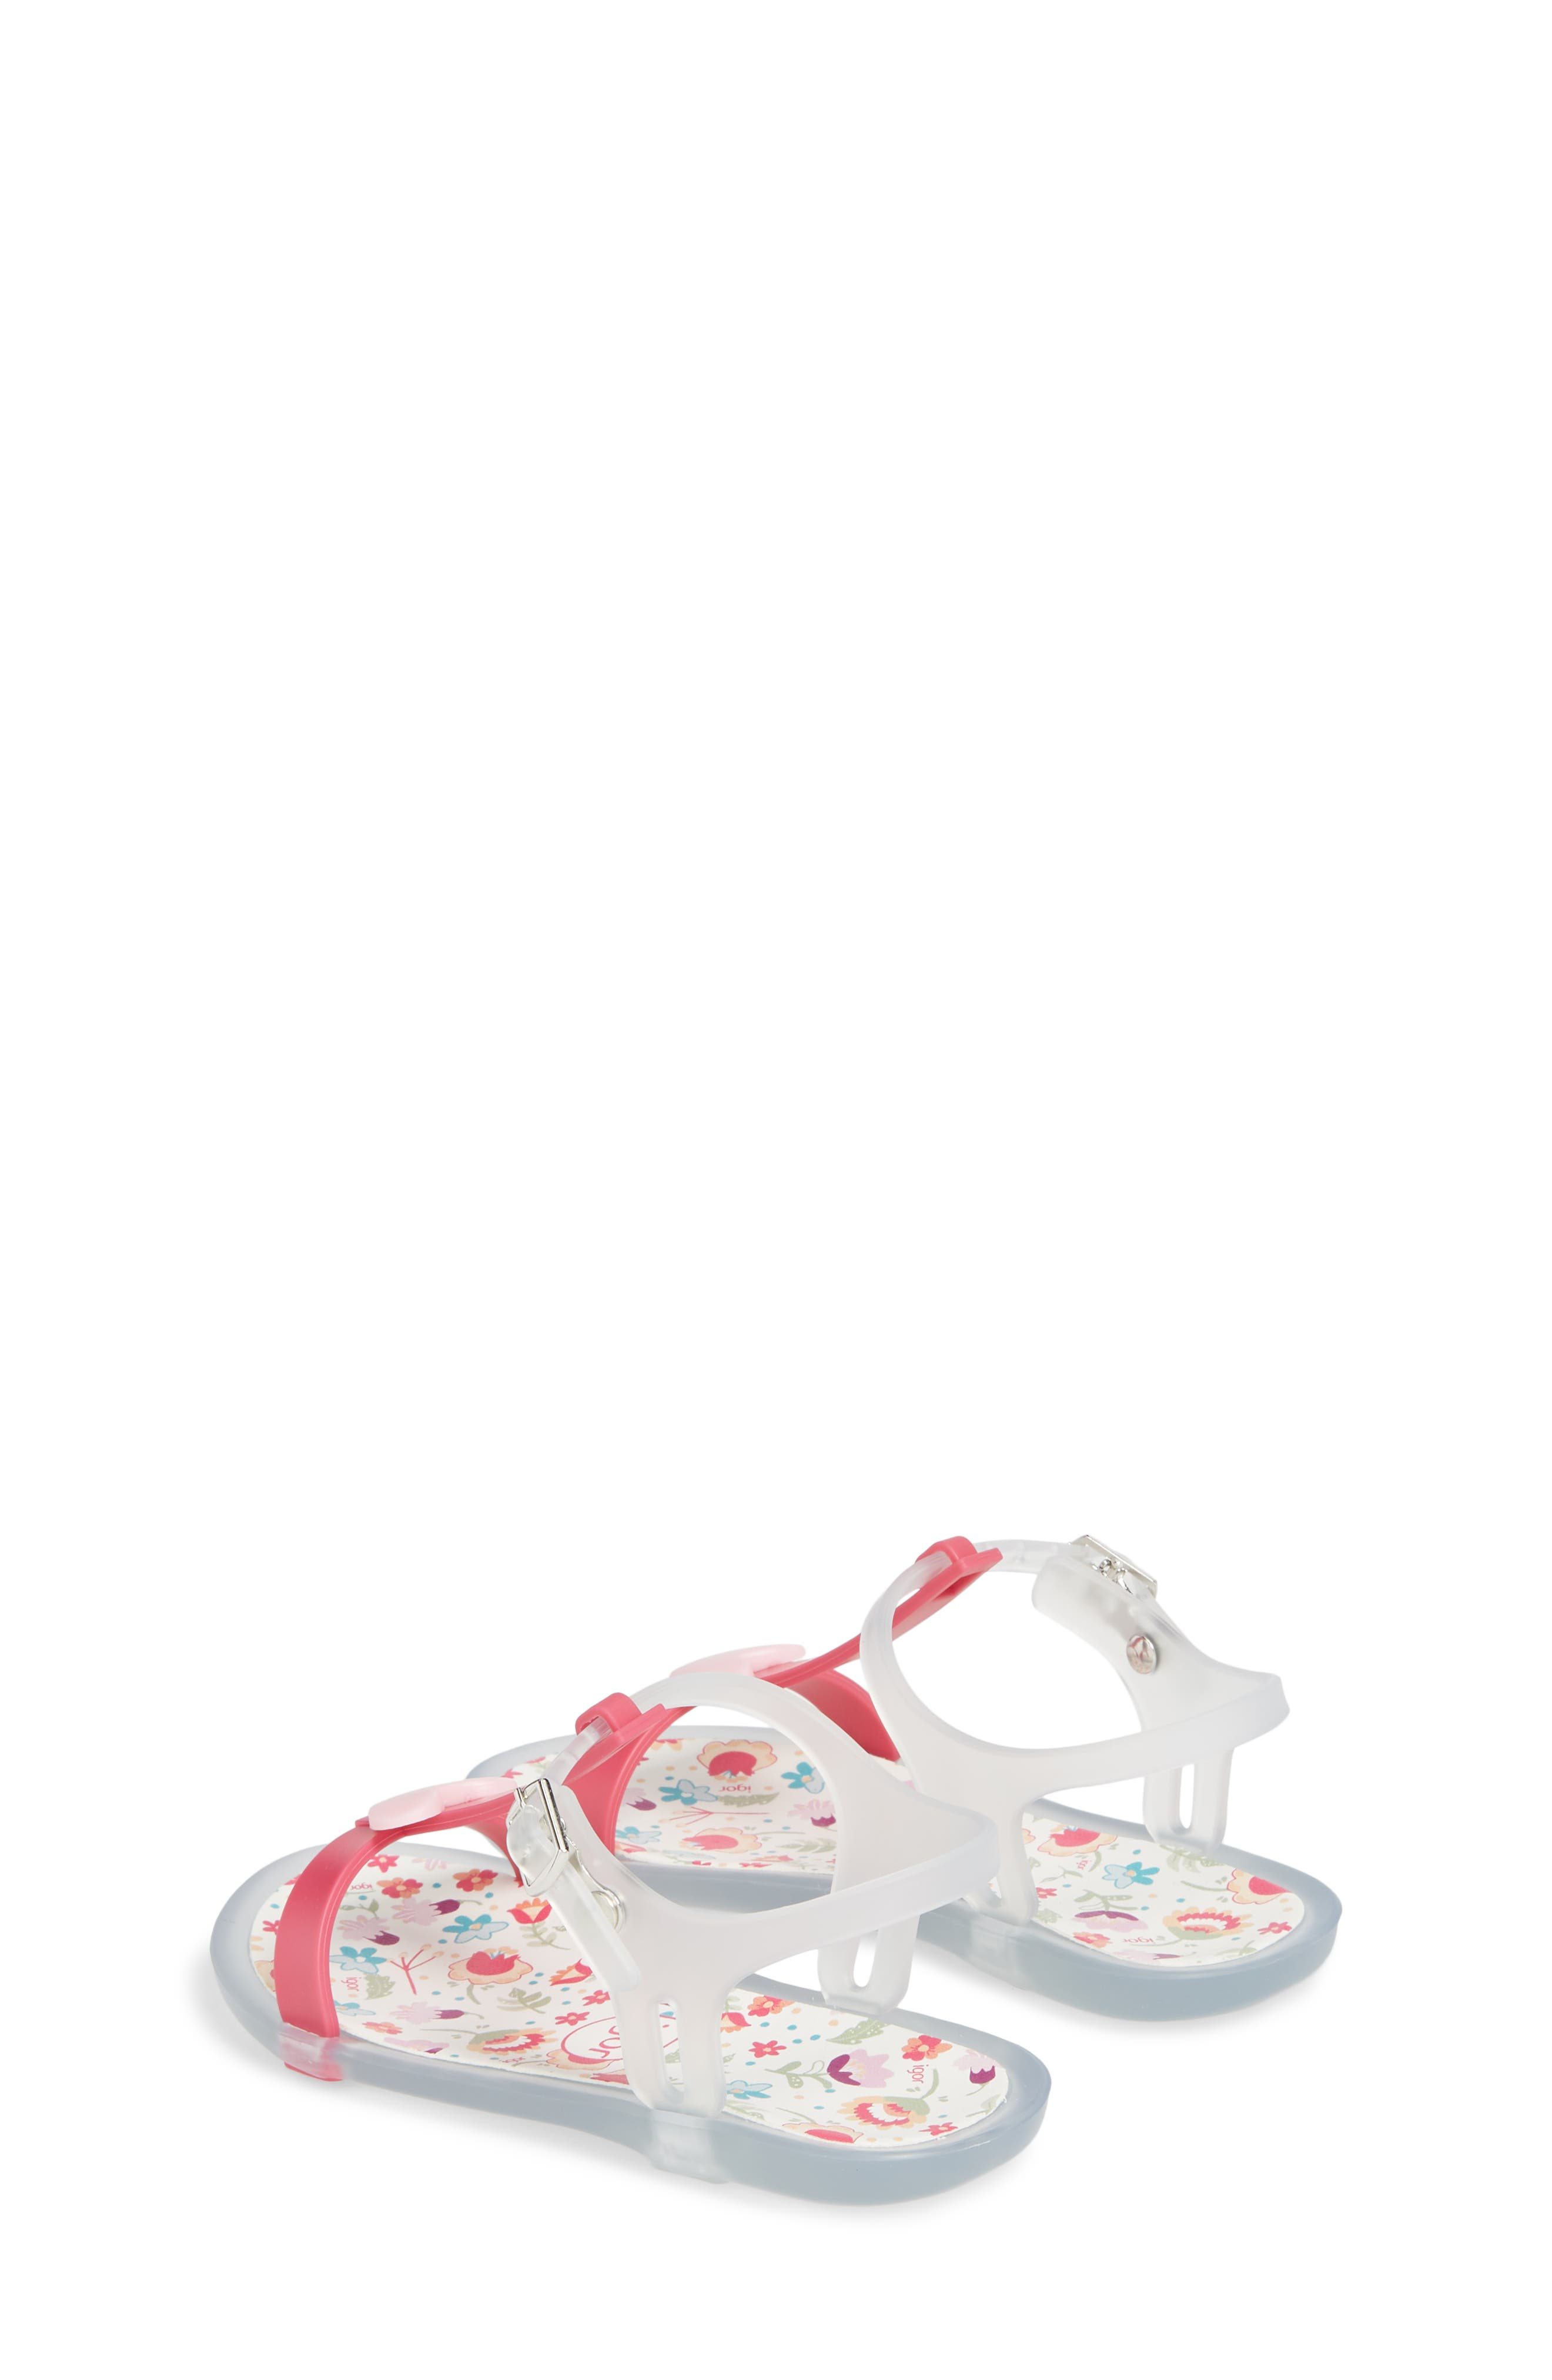 Tricia Cuore T-Strap Sandal,                             Alternate thumbnail 2, color,                             660